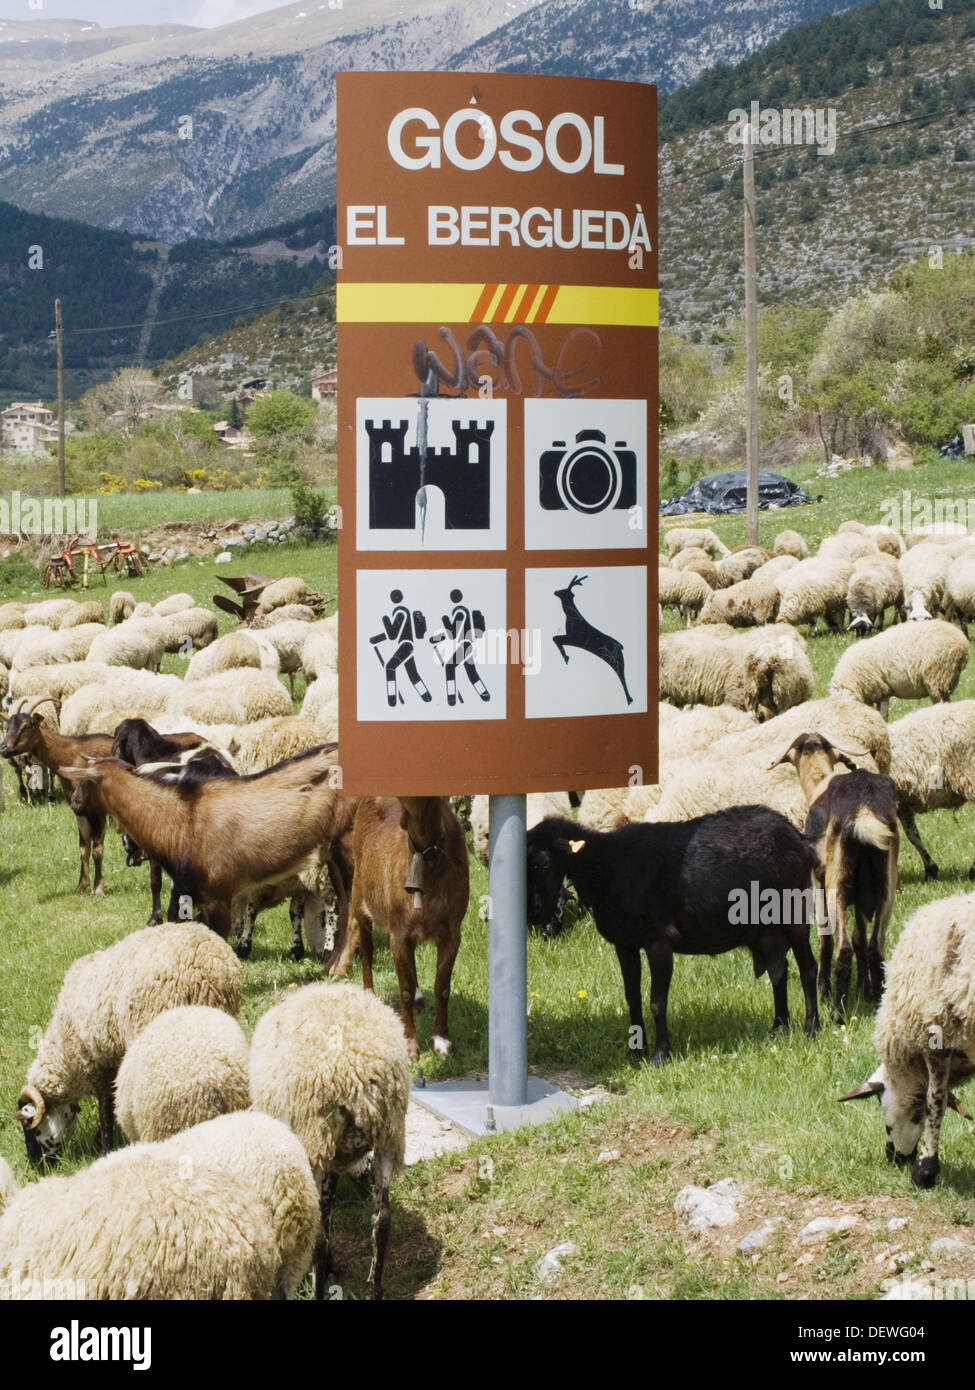 Sheep. Gósol. El Berguedà, Catalonia. Spain. Path of the Good Men (Camí dels Bons Homes). Route of the Cathars. Mountain-bike. - Stock Image